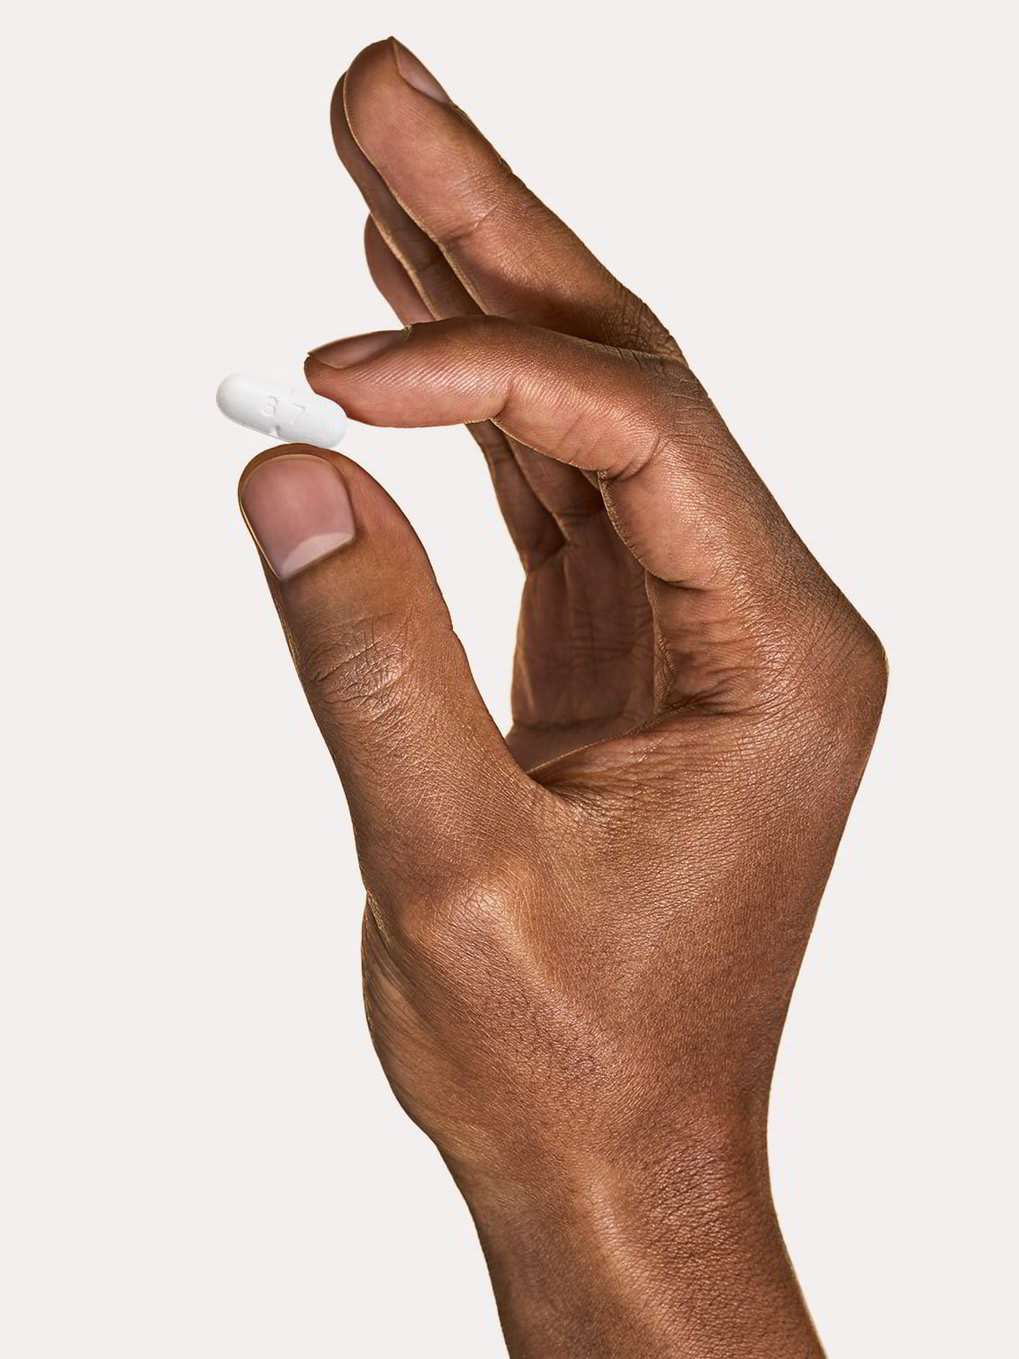 A hand holding a generic valtrex pill